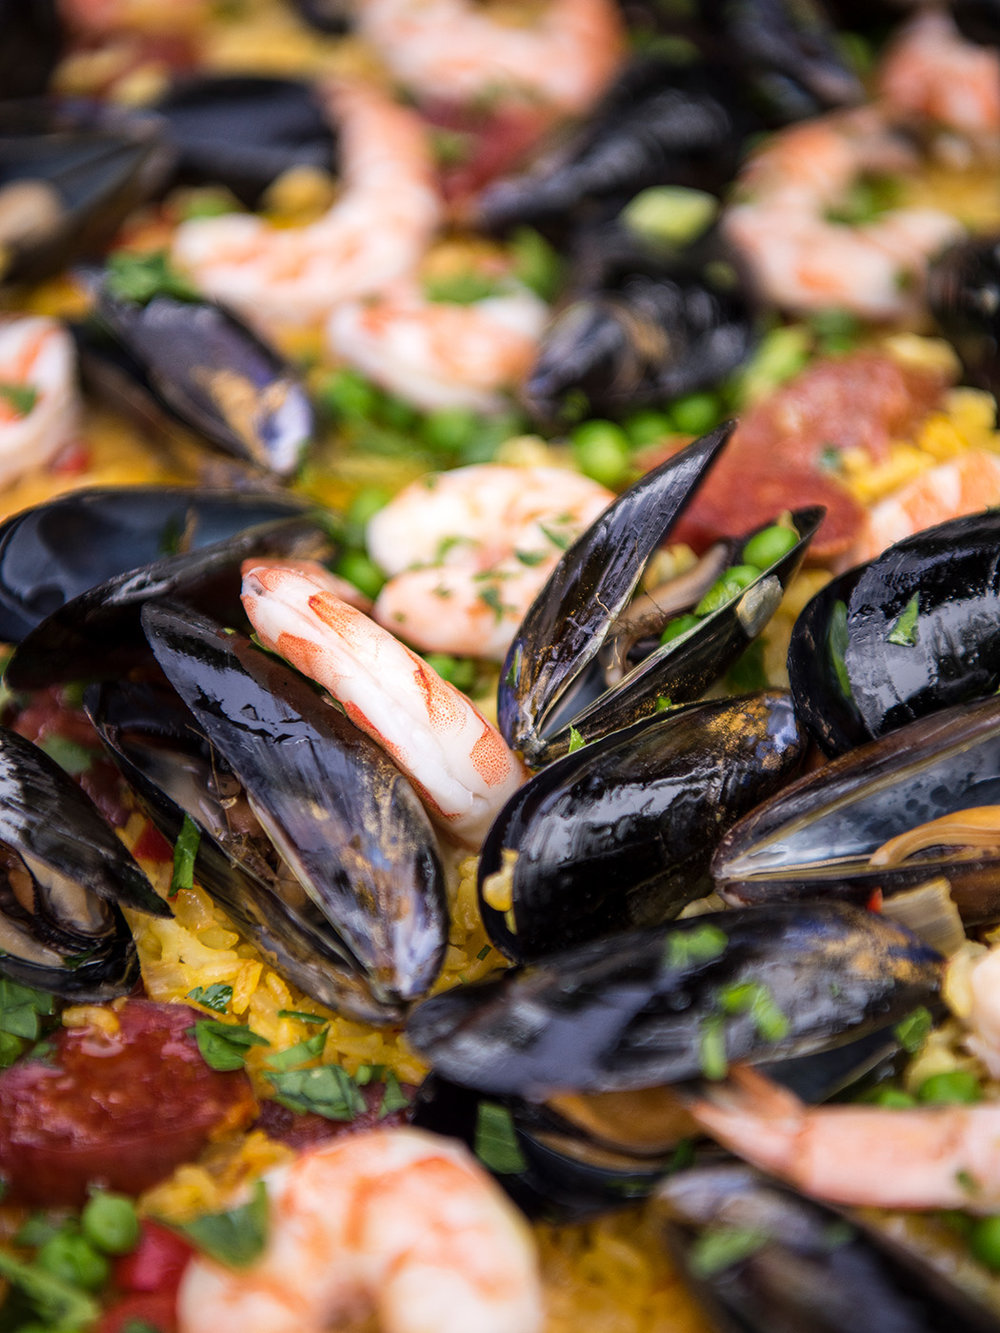 Deborah_Farnault_Food_Network_How-To-Win-Summer-Grilled-Sheet-Pan-Paella-3x4-0282.jpg